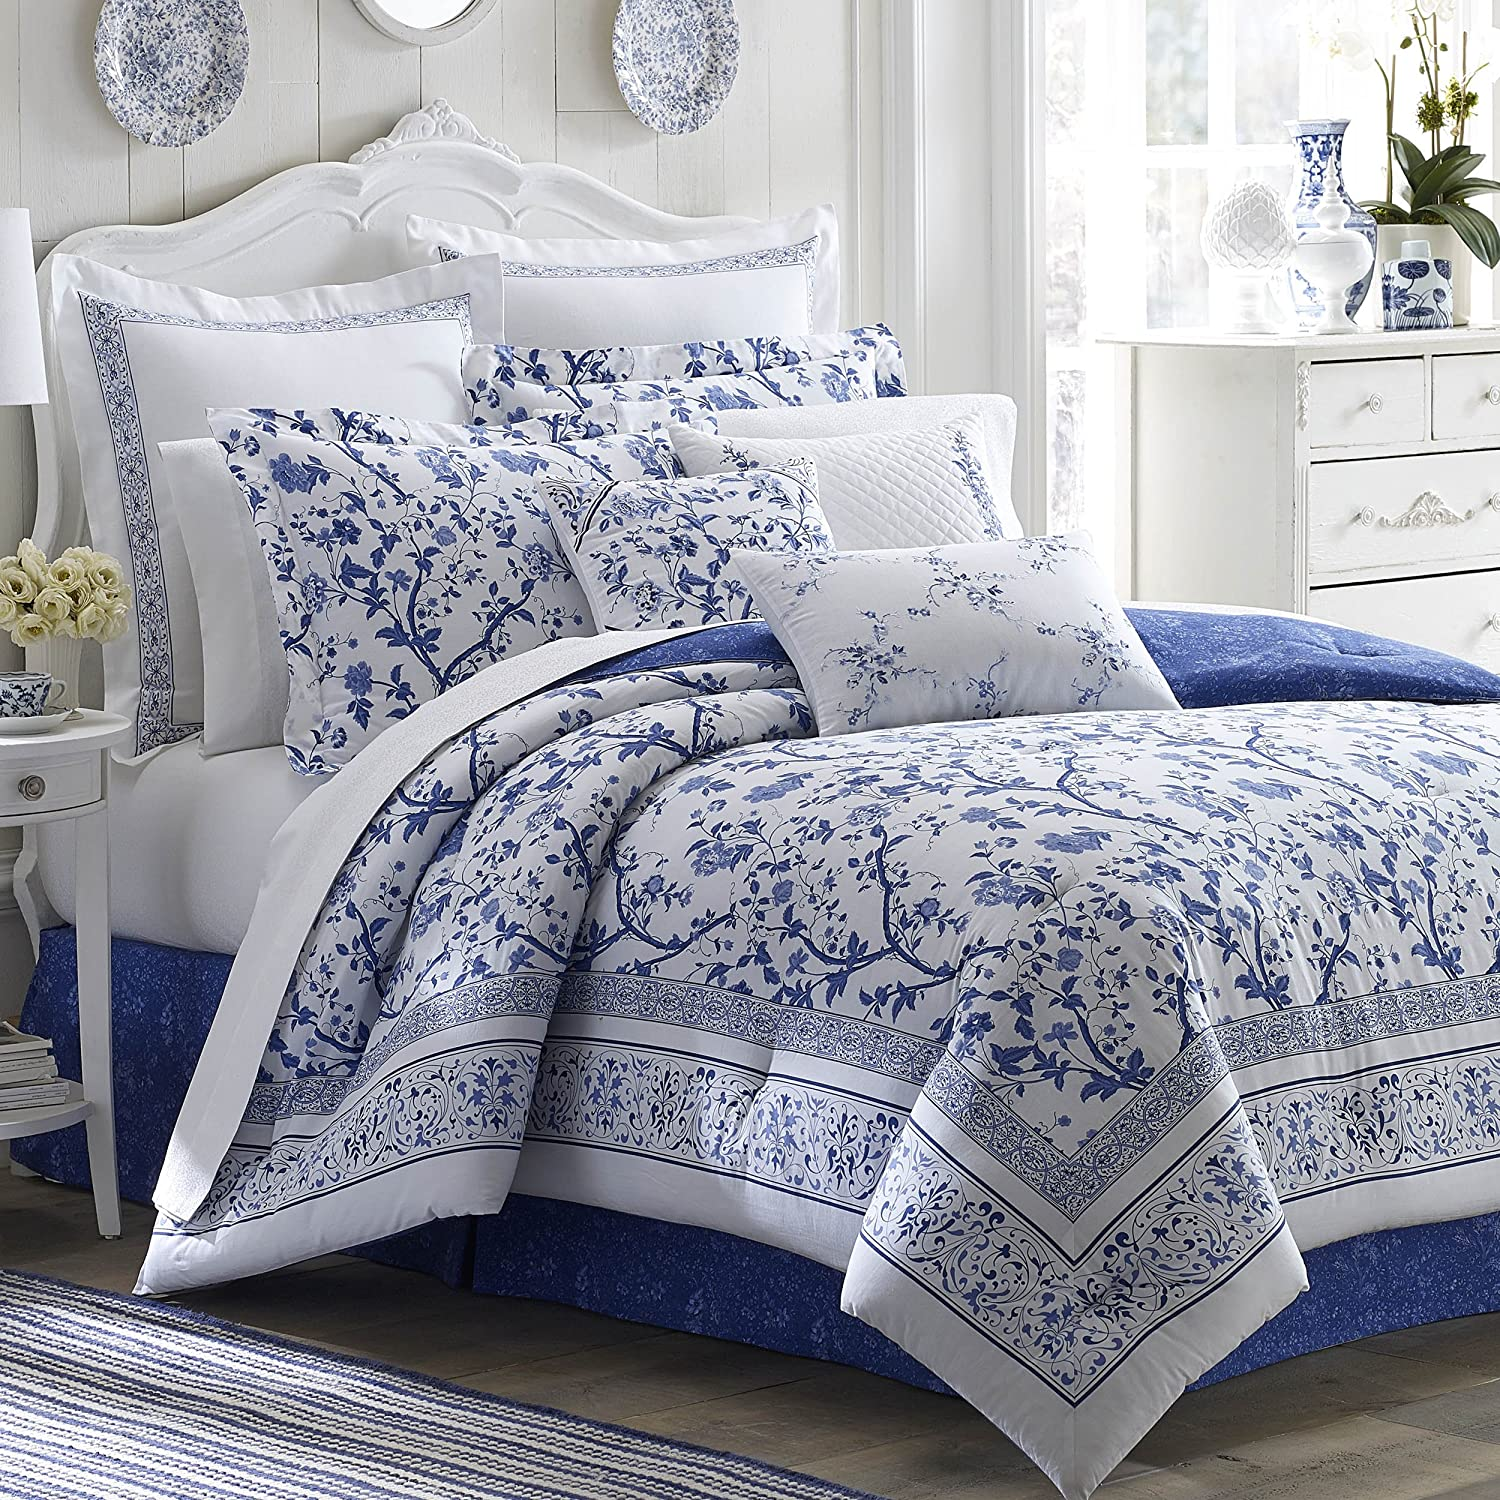 Laura Ashley Charlotte Comforter Set, Queen, Blue